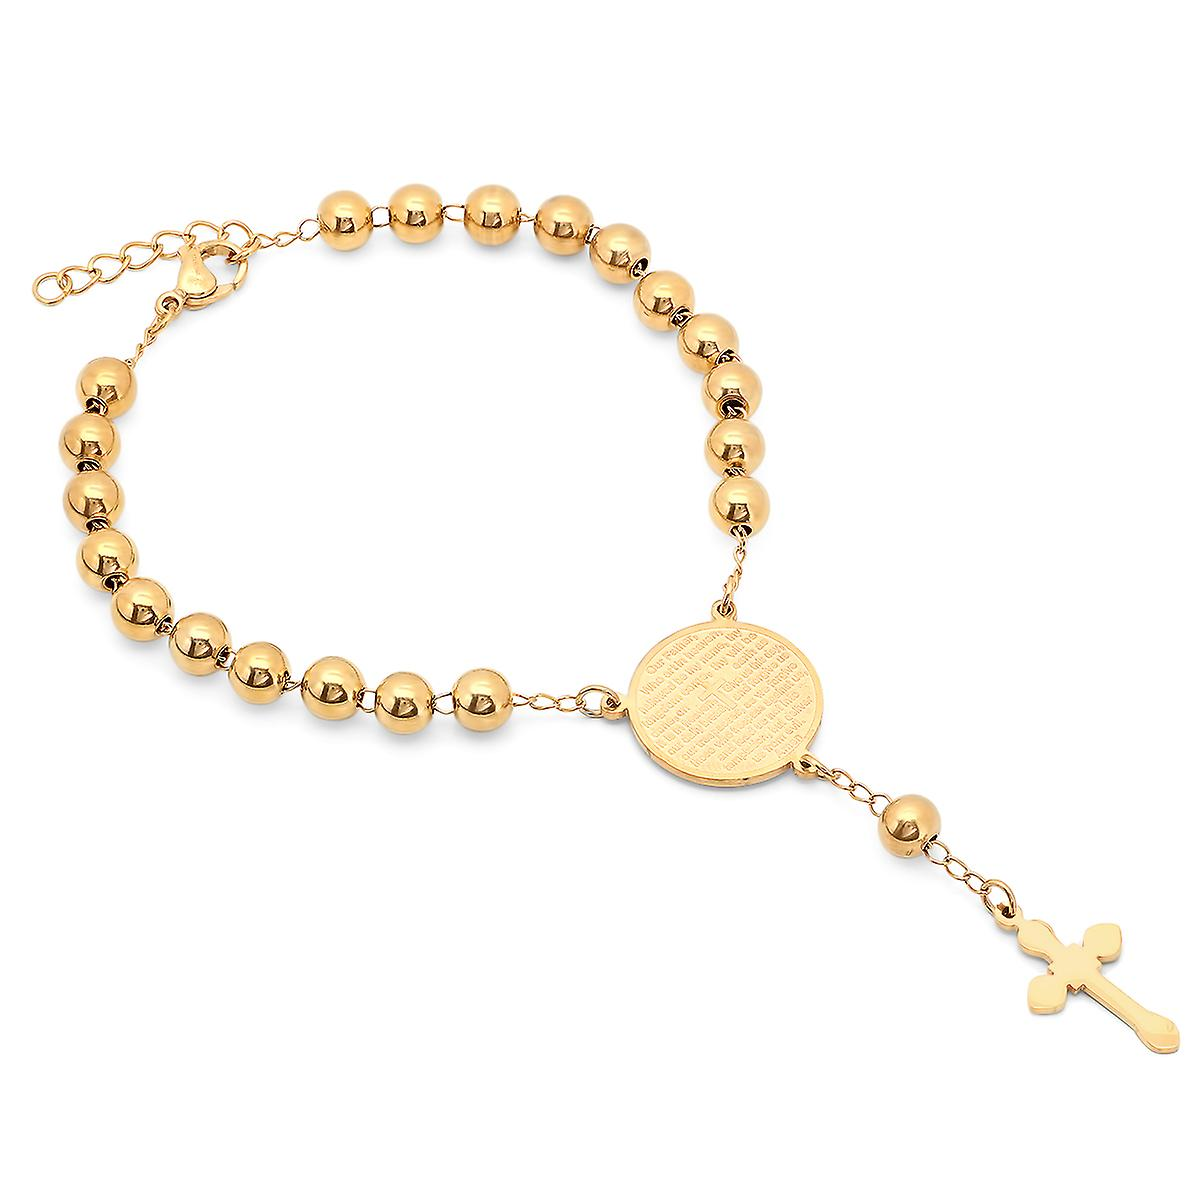 18K Gold Plated Stainless Steel Lord'S Prayer Rosary Bracelet